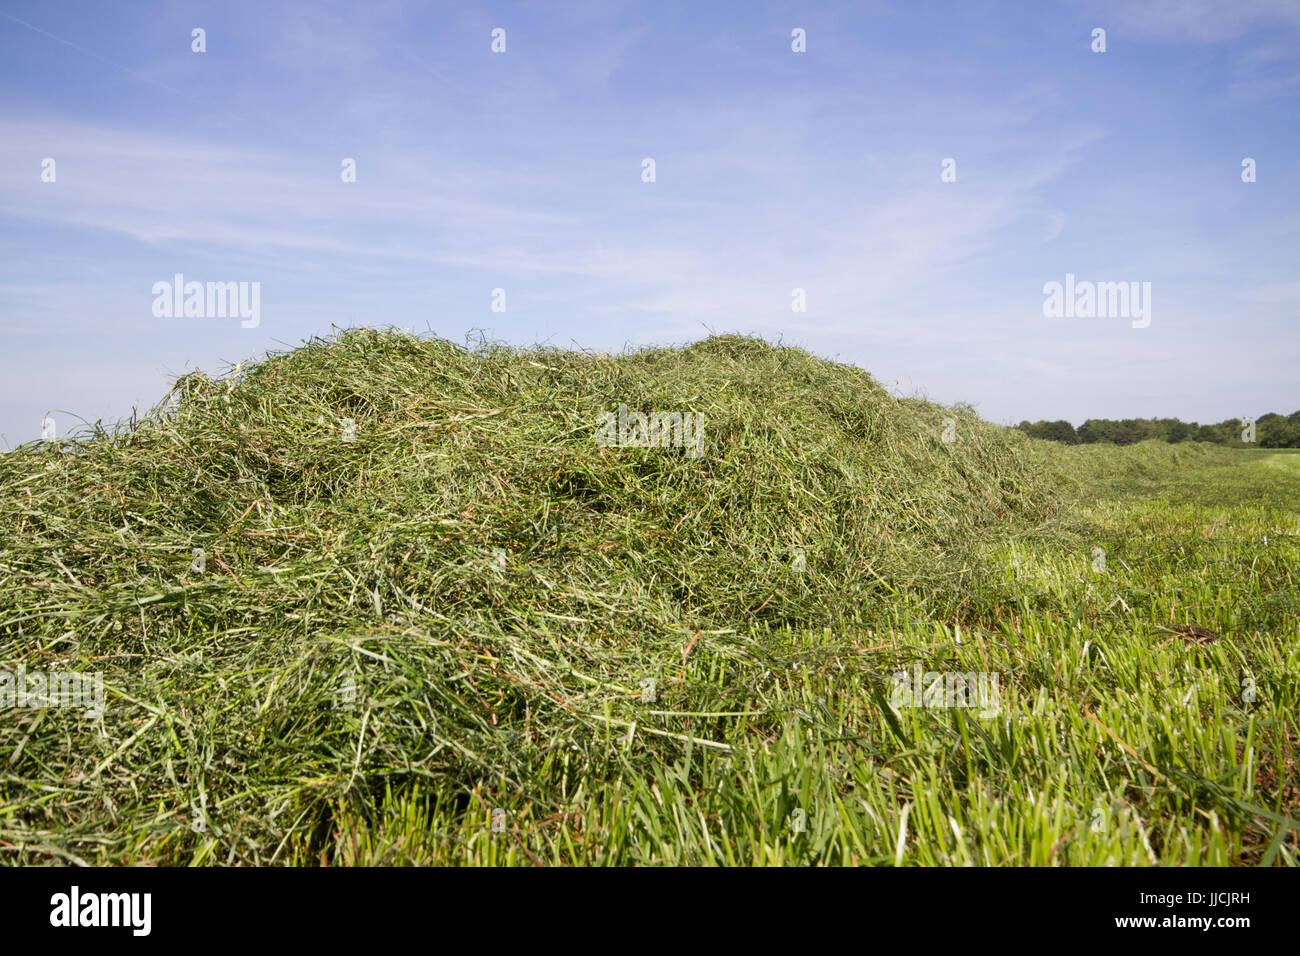 Hay, raked in a row, waiting to be harvested, under a blue sky - Stock Image